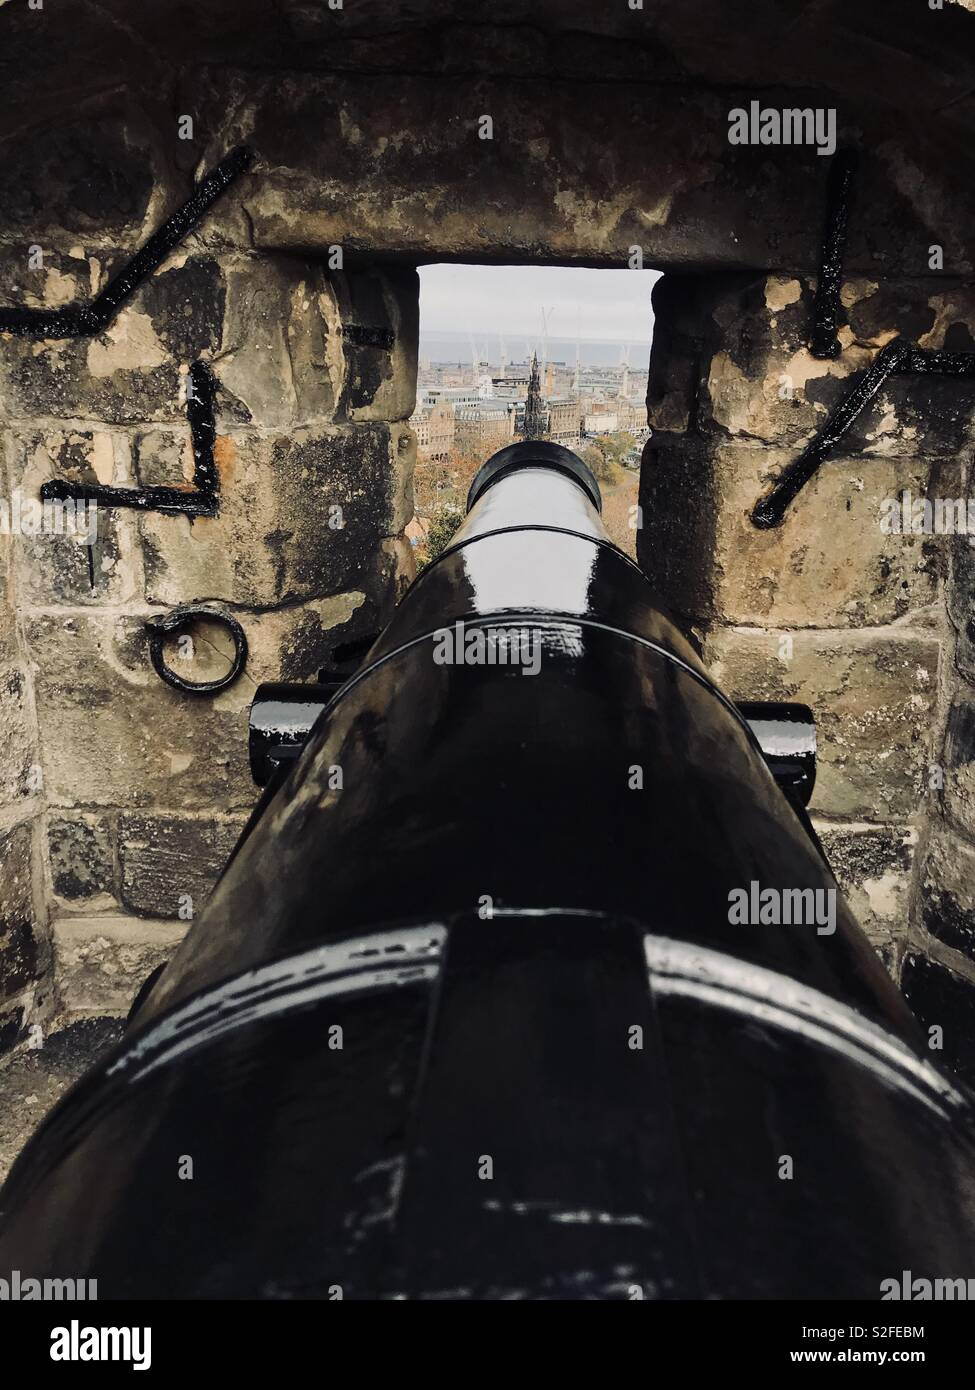 Cannon views - Stock Image